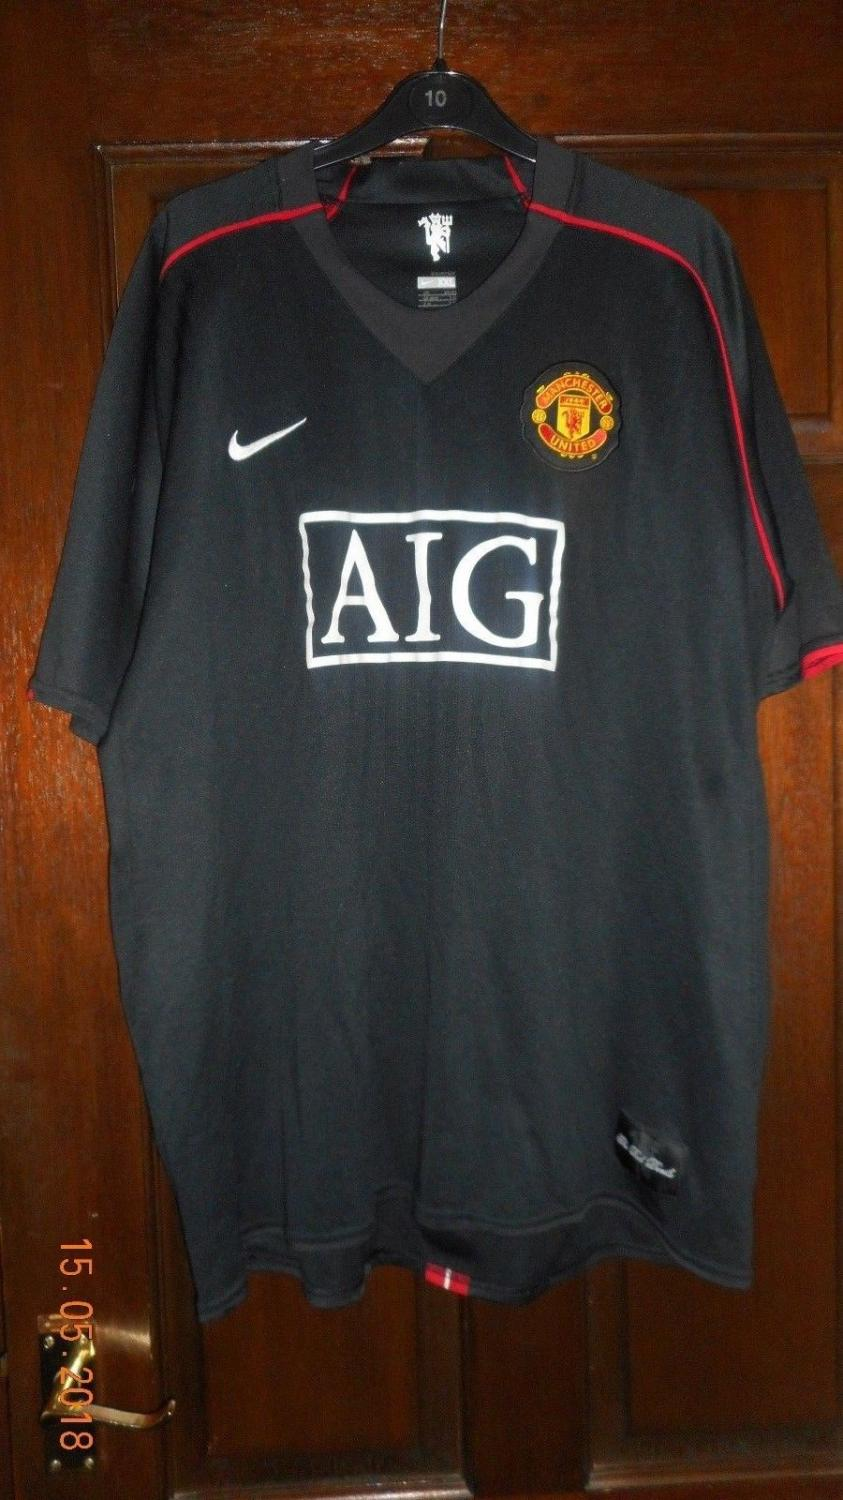 Manchester United Away football shirt 2007 - 2008. Sponsored by AIG